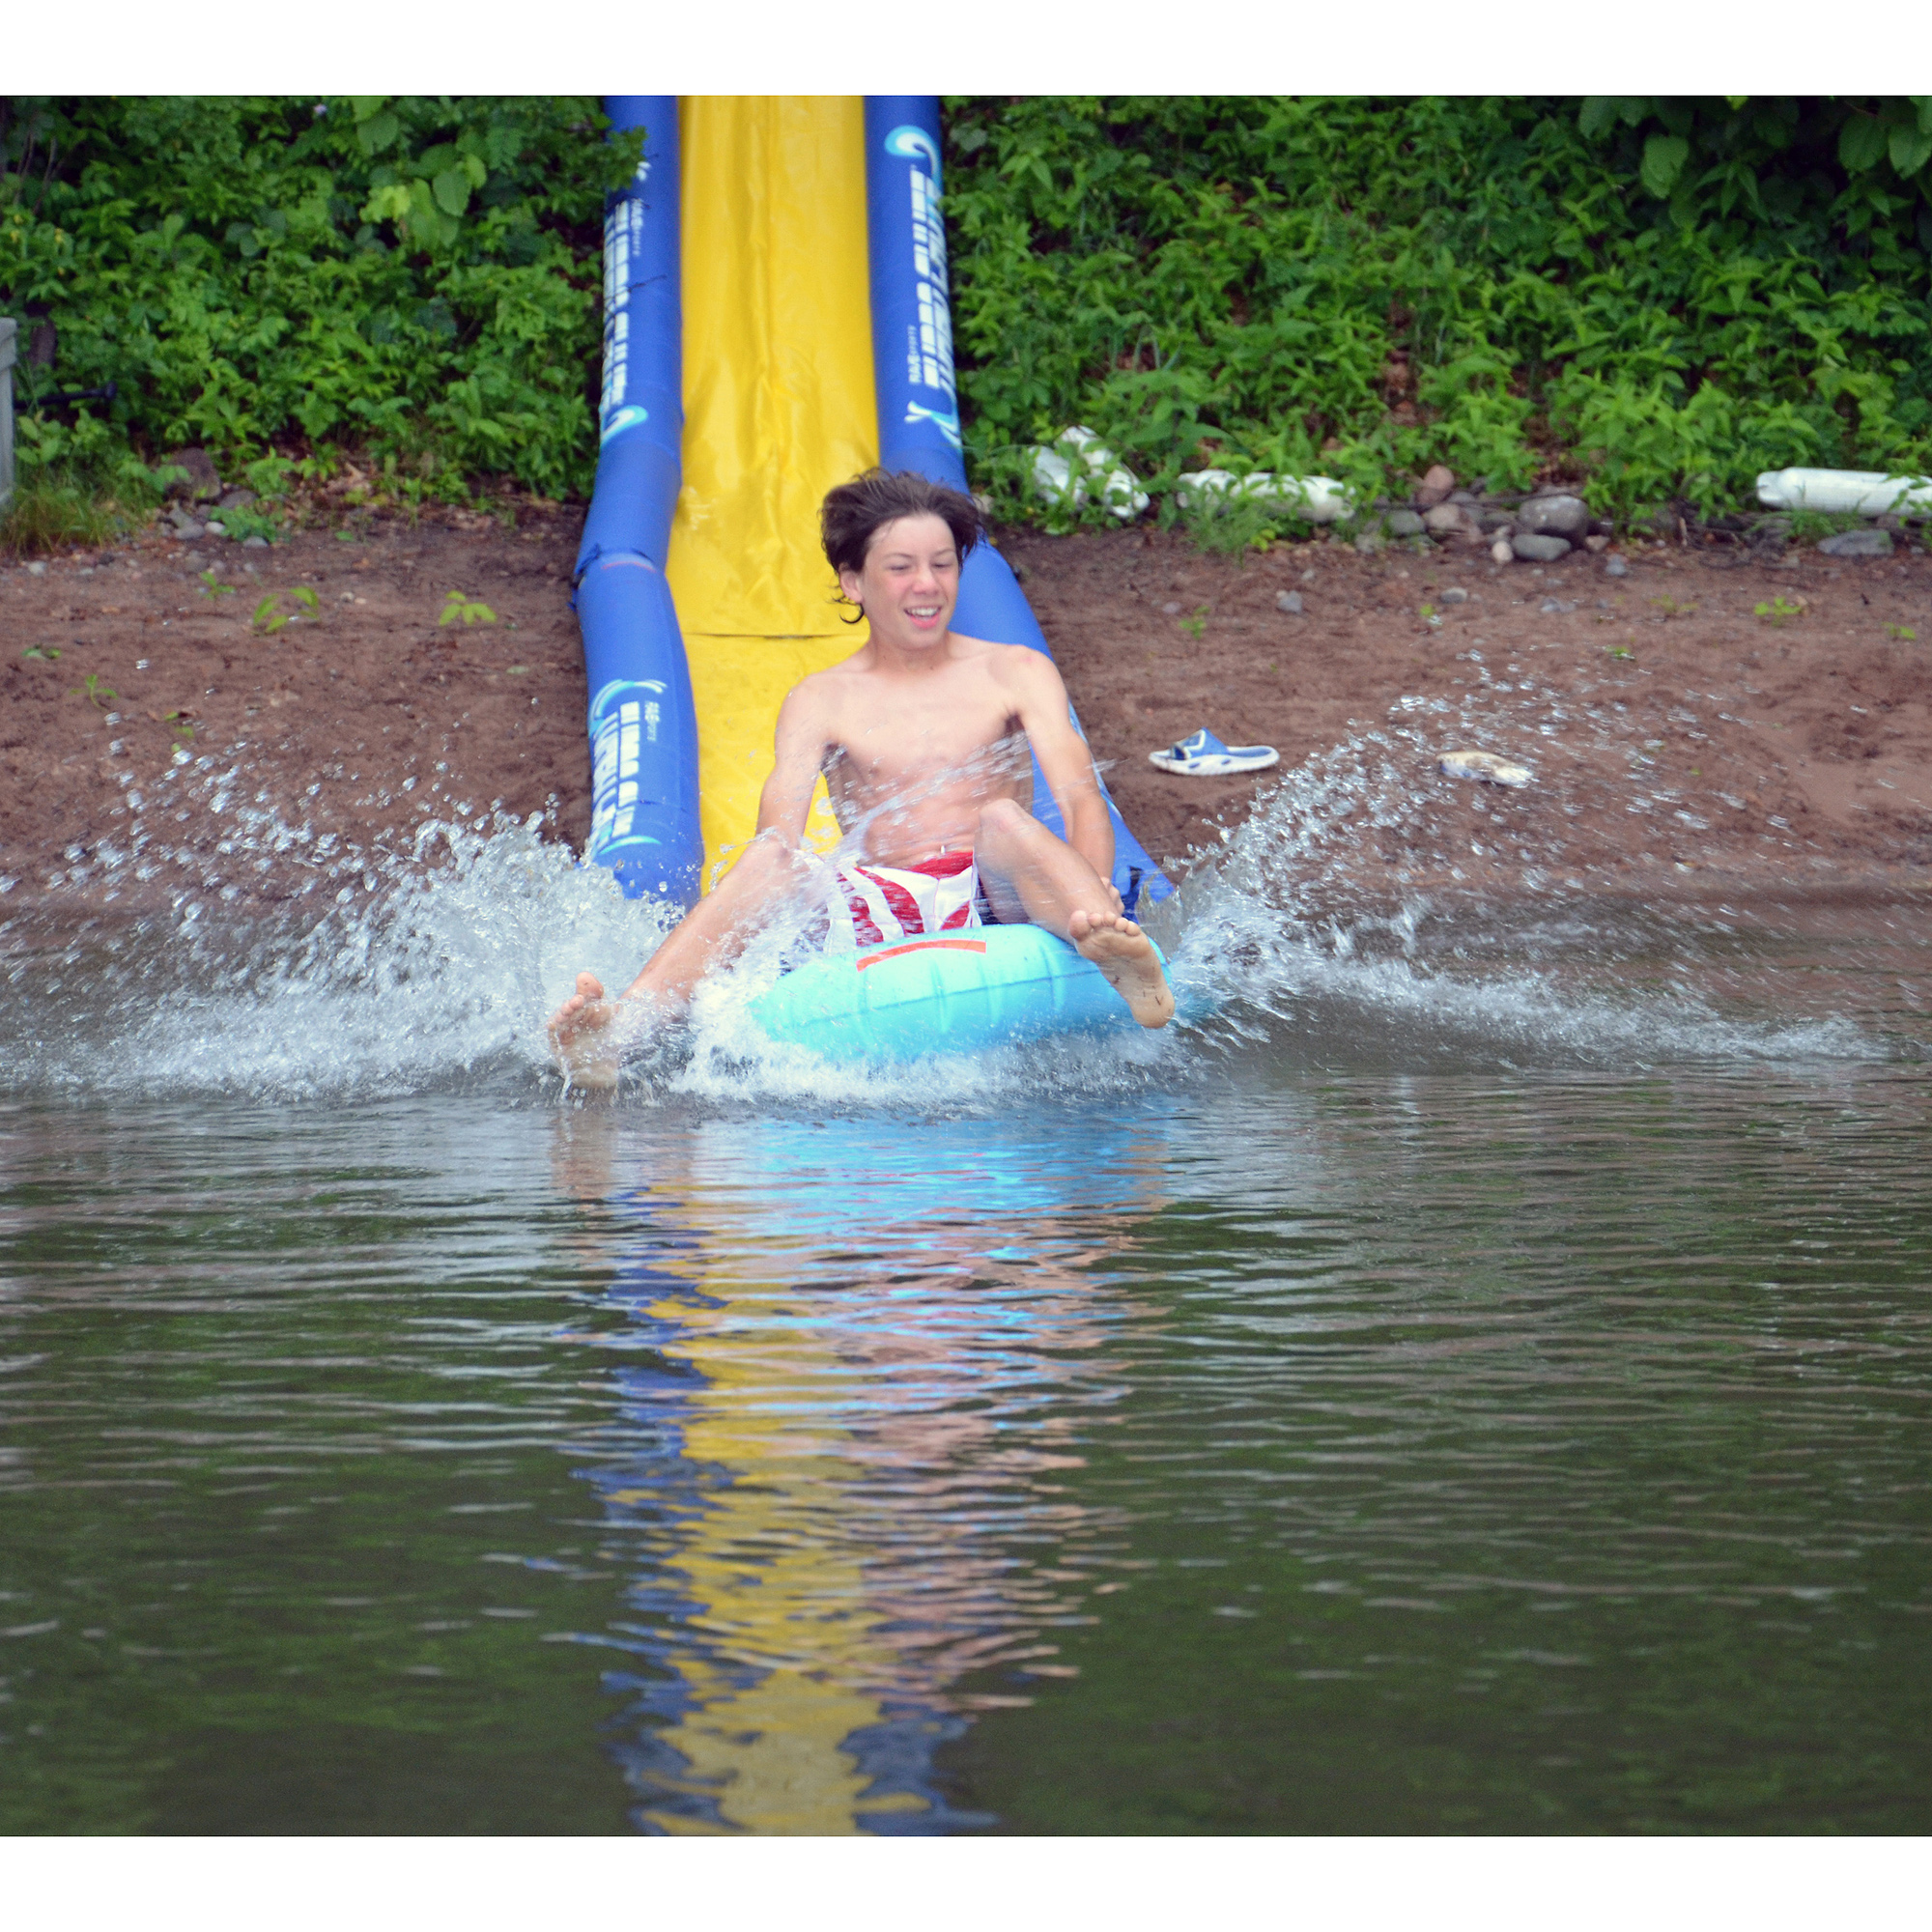 Rave Sports Tubo Chute Waterslide Lakeshore Package